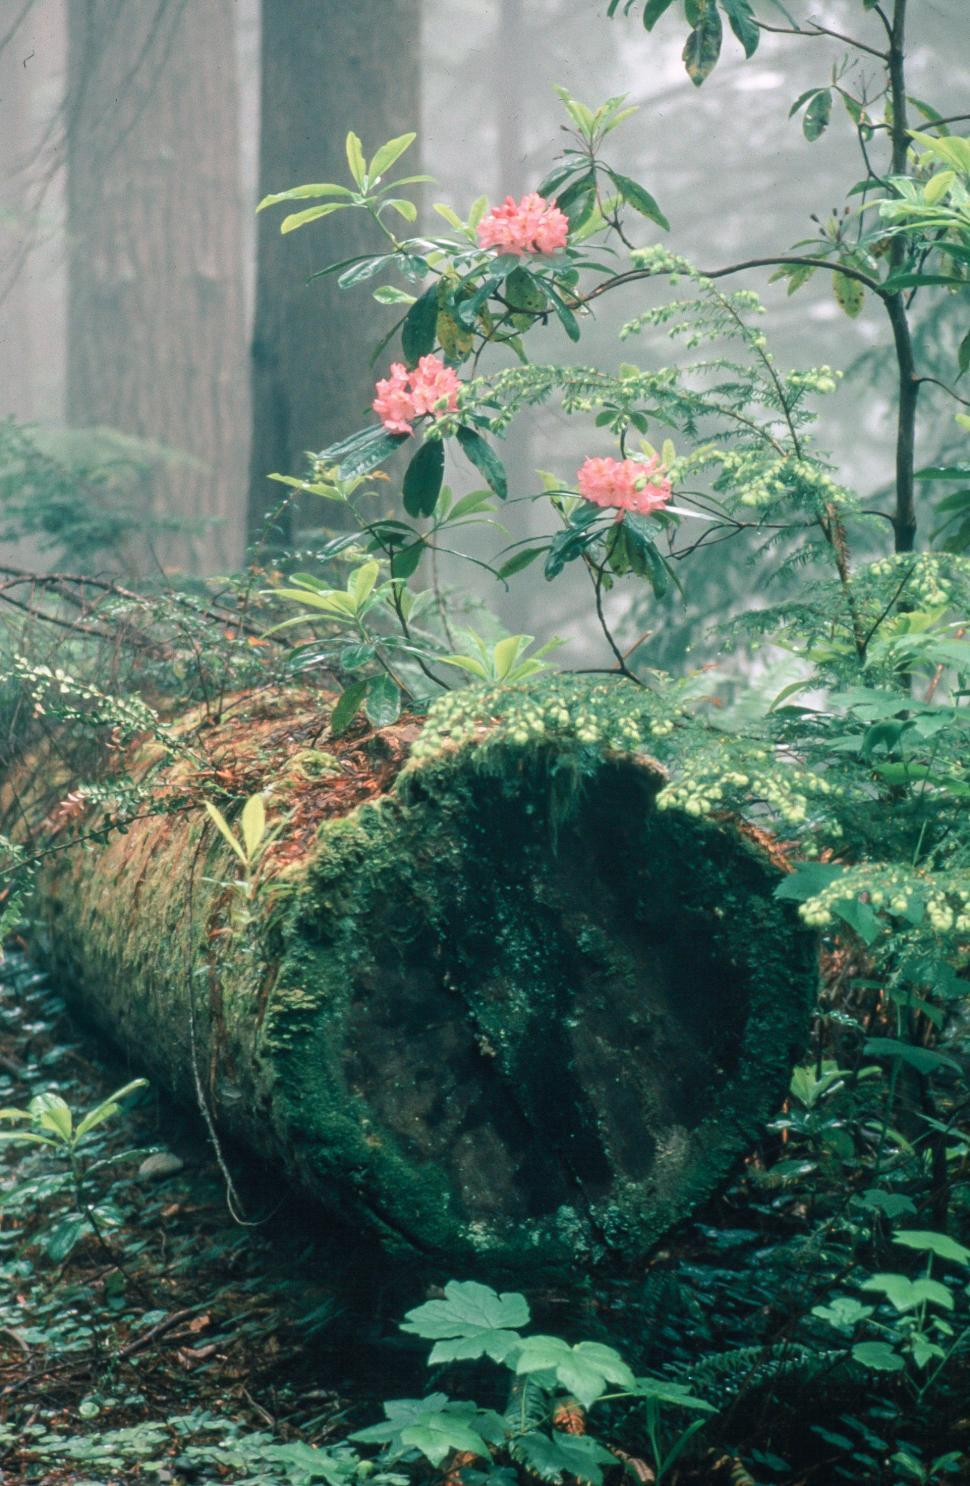 Download Free Stock HD Photo of Rhododendron Flowers in forest floor Online